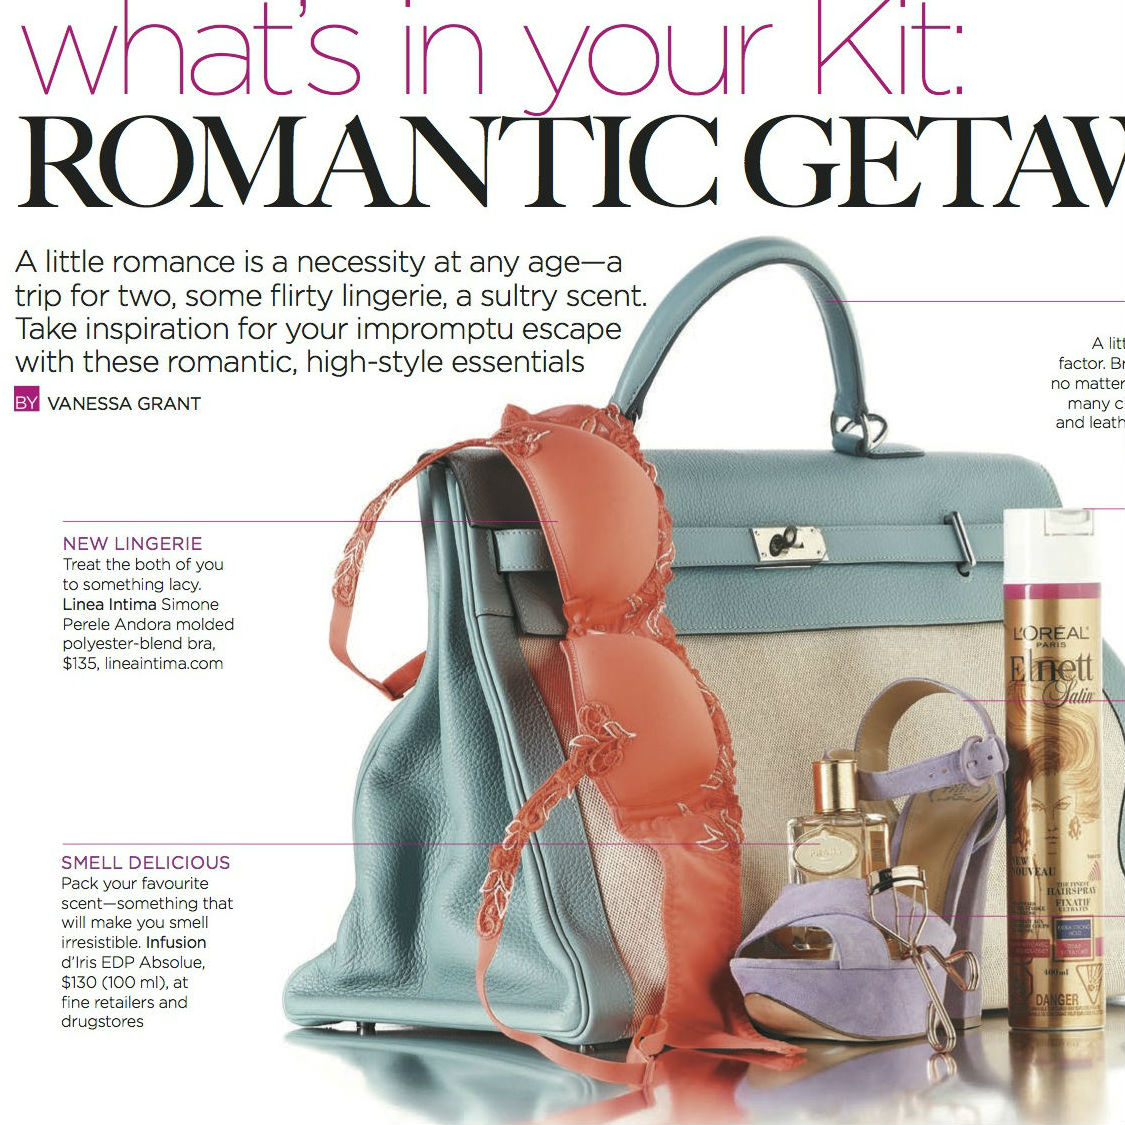 THE KIT PAPER:  Romantic Getaway   A little romance is a necessity at any age—a trip for two, some flirty lingerie, a sultry scent. Take inspiration for your impromptu escape with these romantic, high-style essentials.